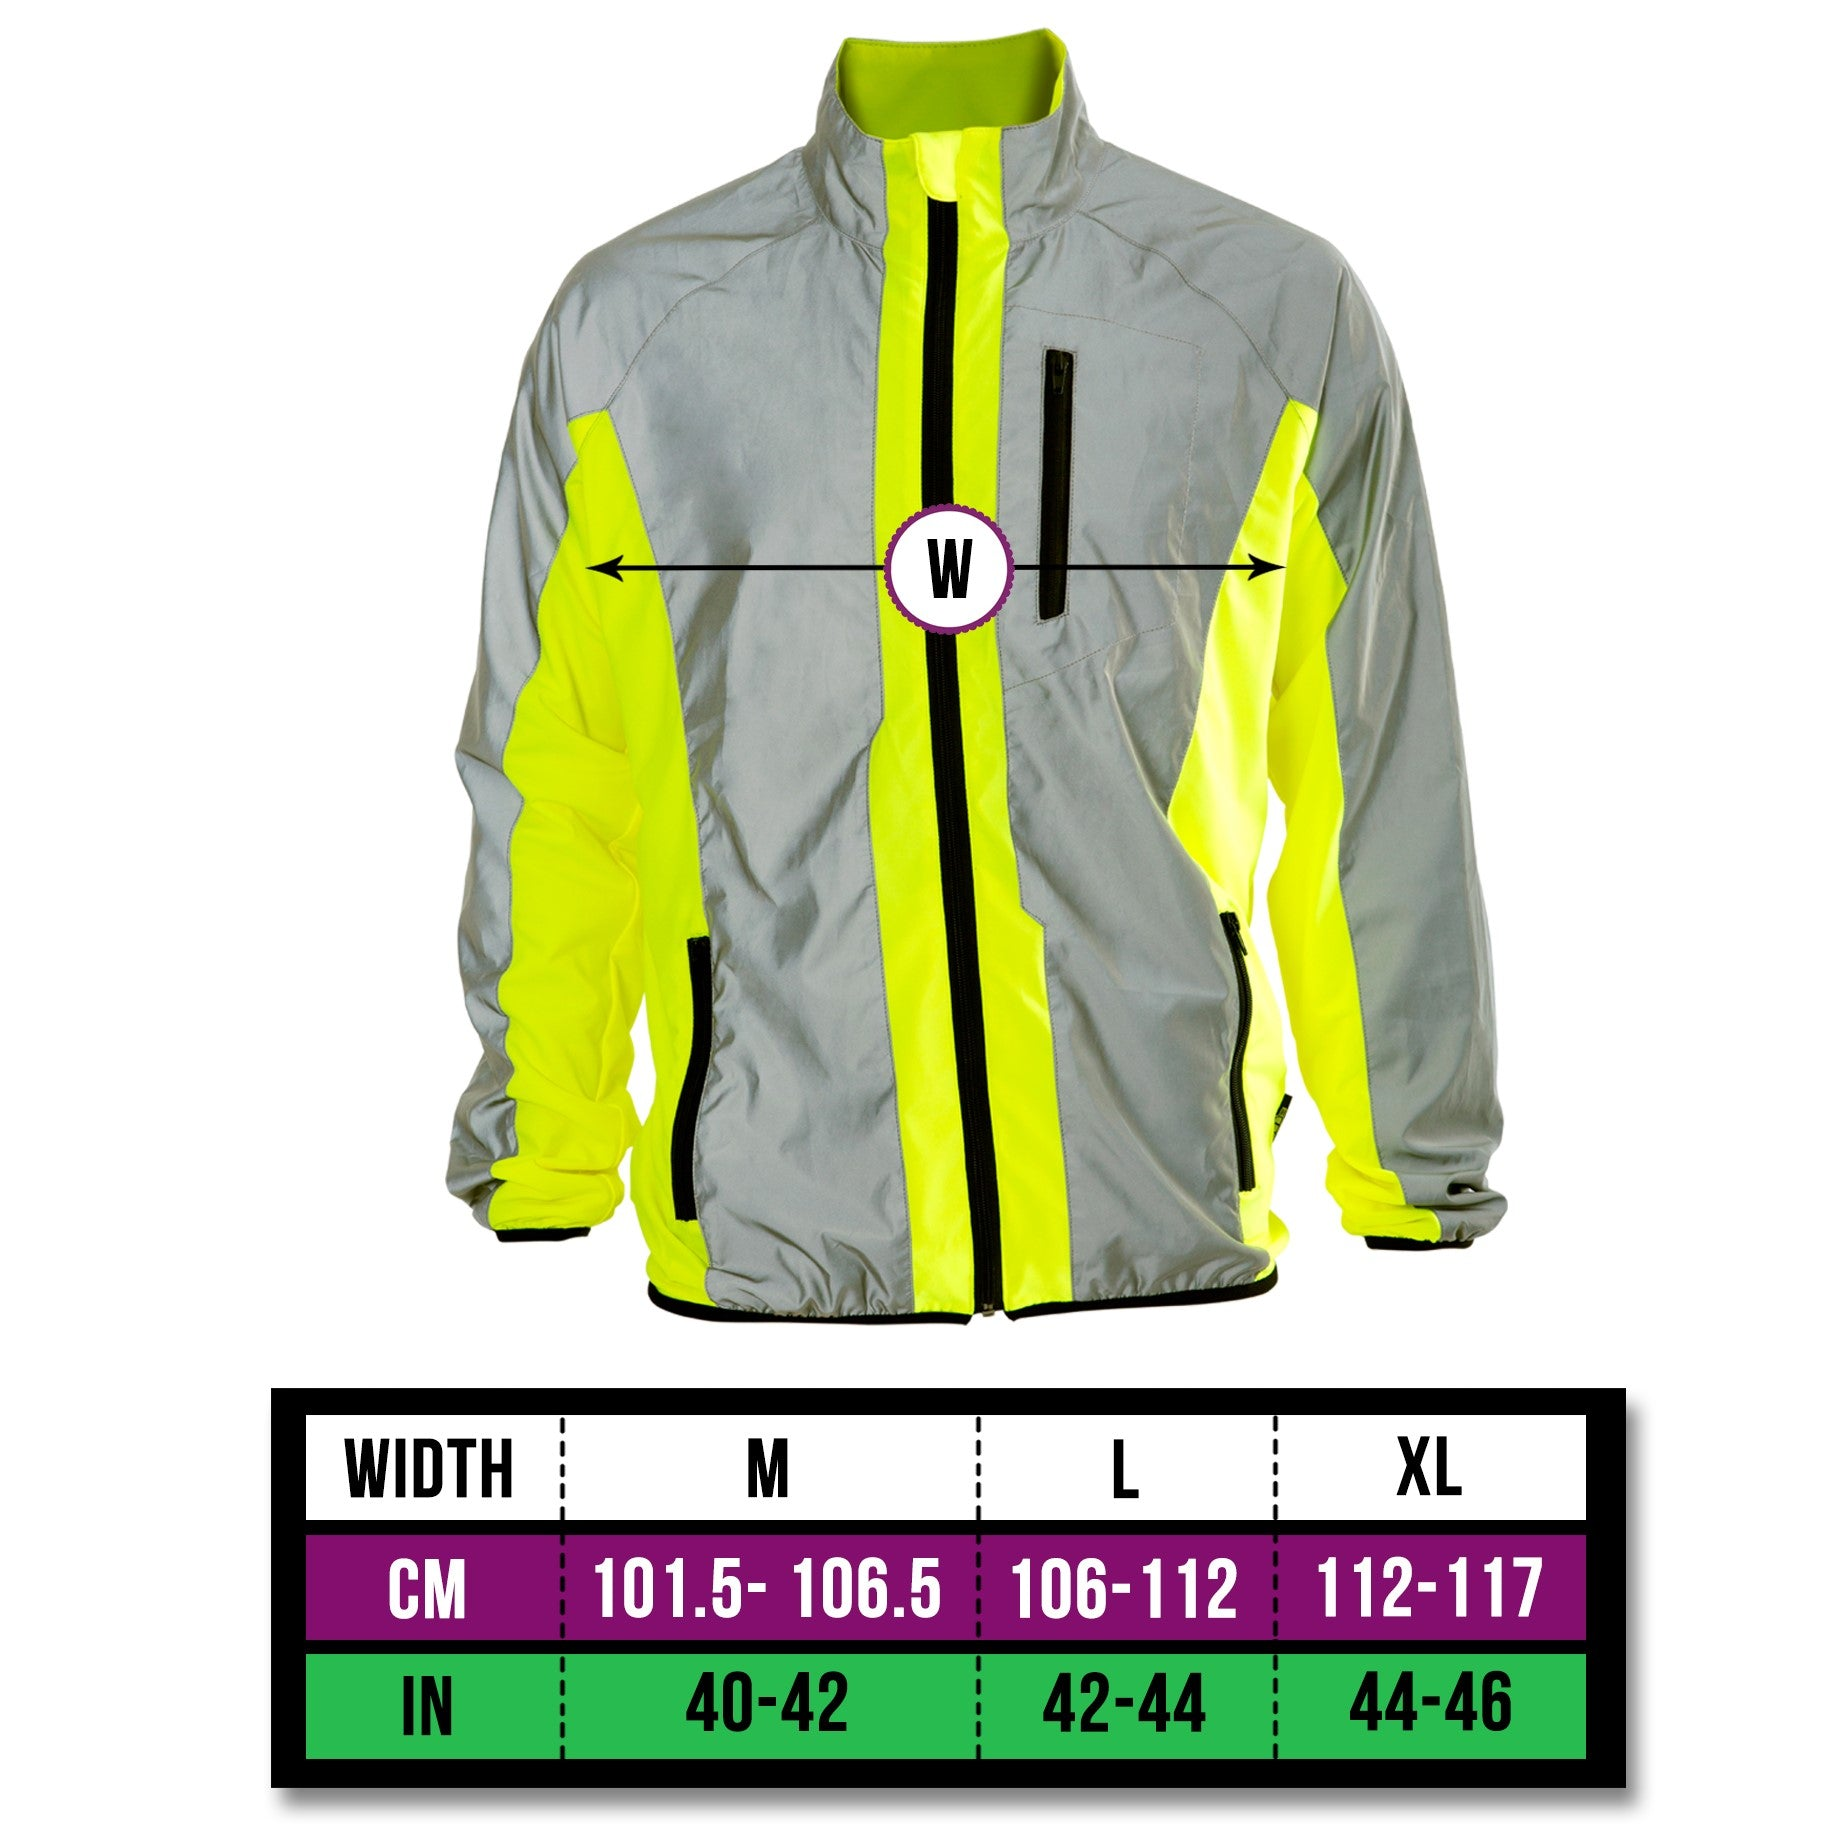 BTR Reflective Jacket